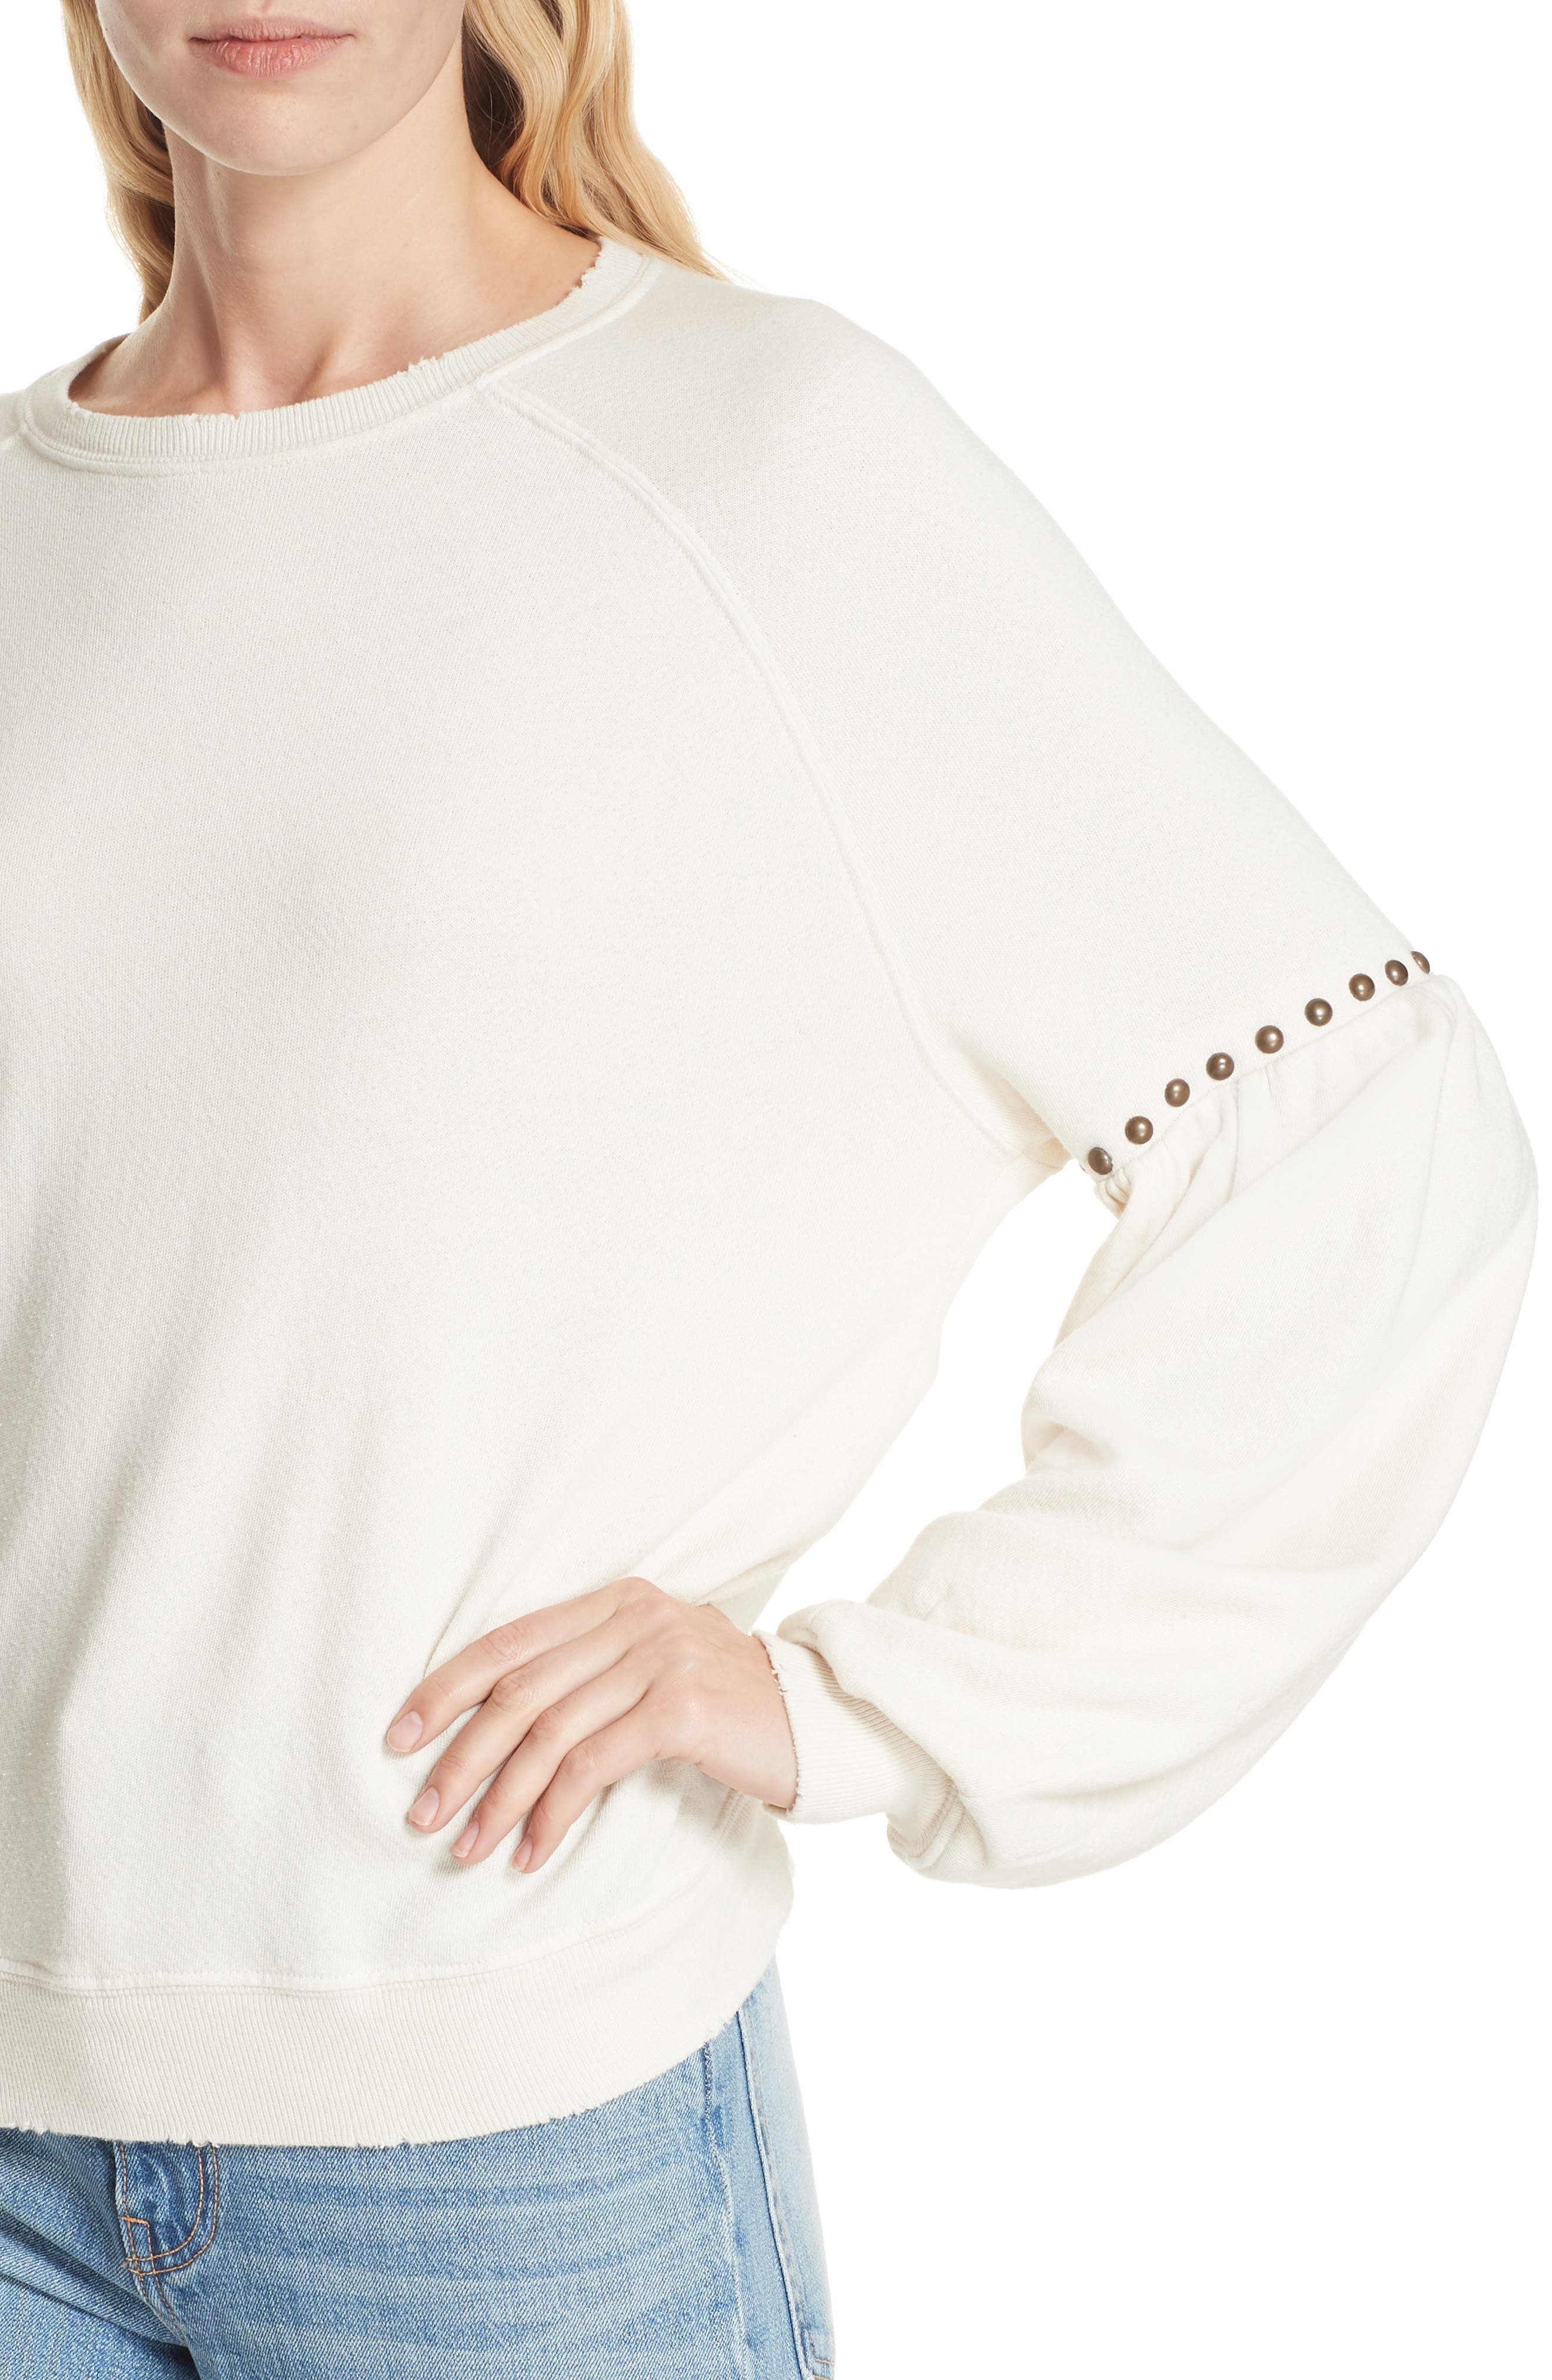 The Bishop Sleeve Studded Sweatshirt,                             Alternate thumbnail 5, color,                             Washed White W/ Studs